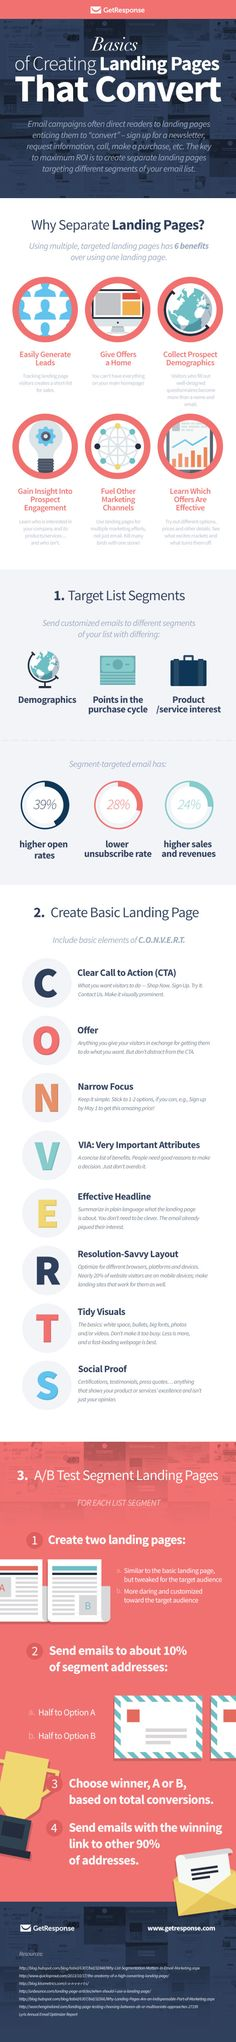 13 Great Landing Page Optimization Tips #Infographic